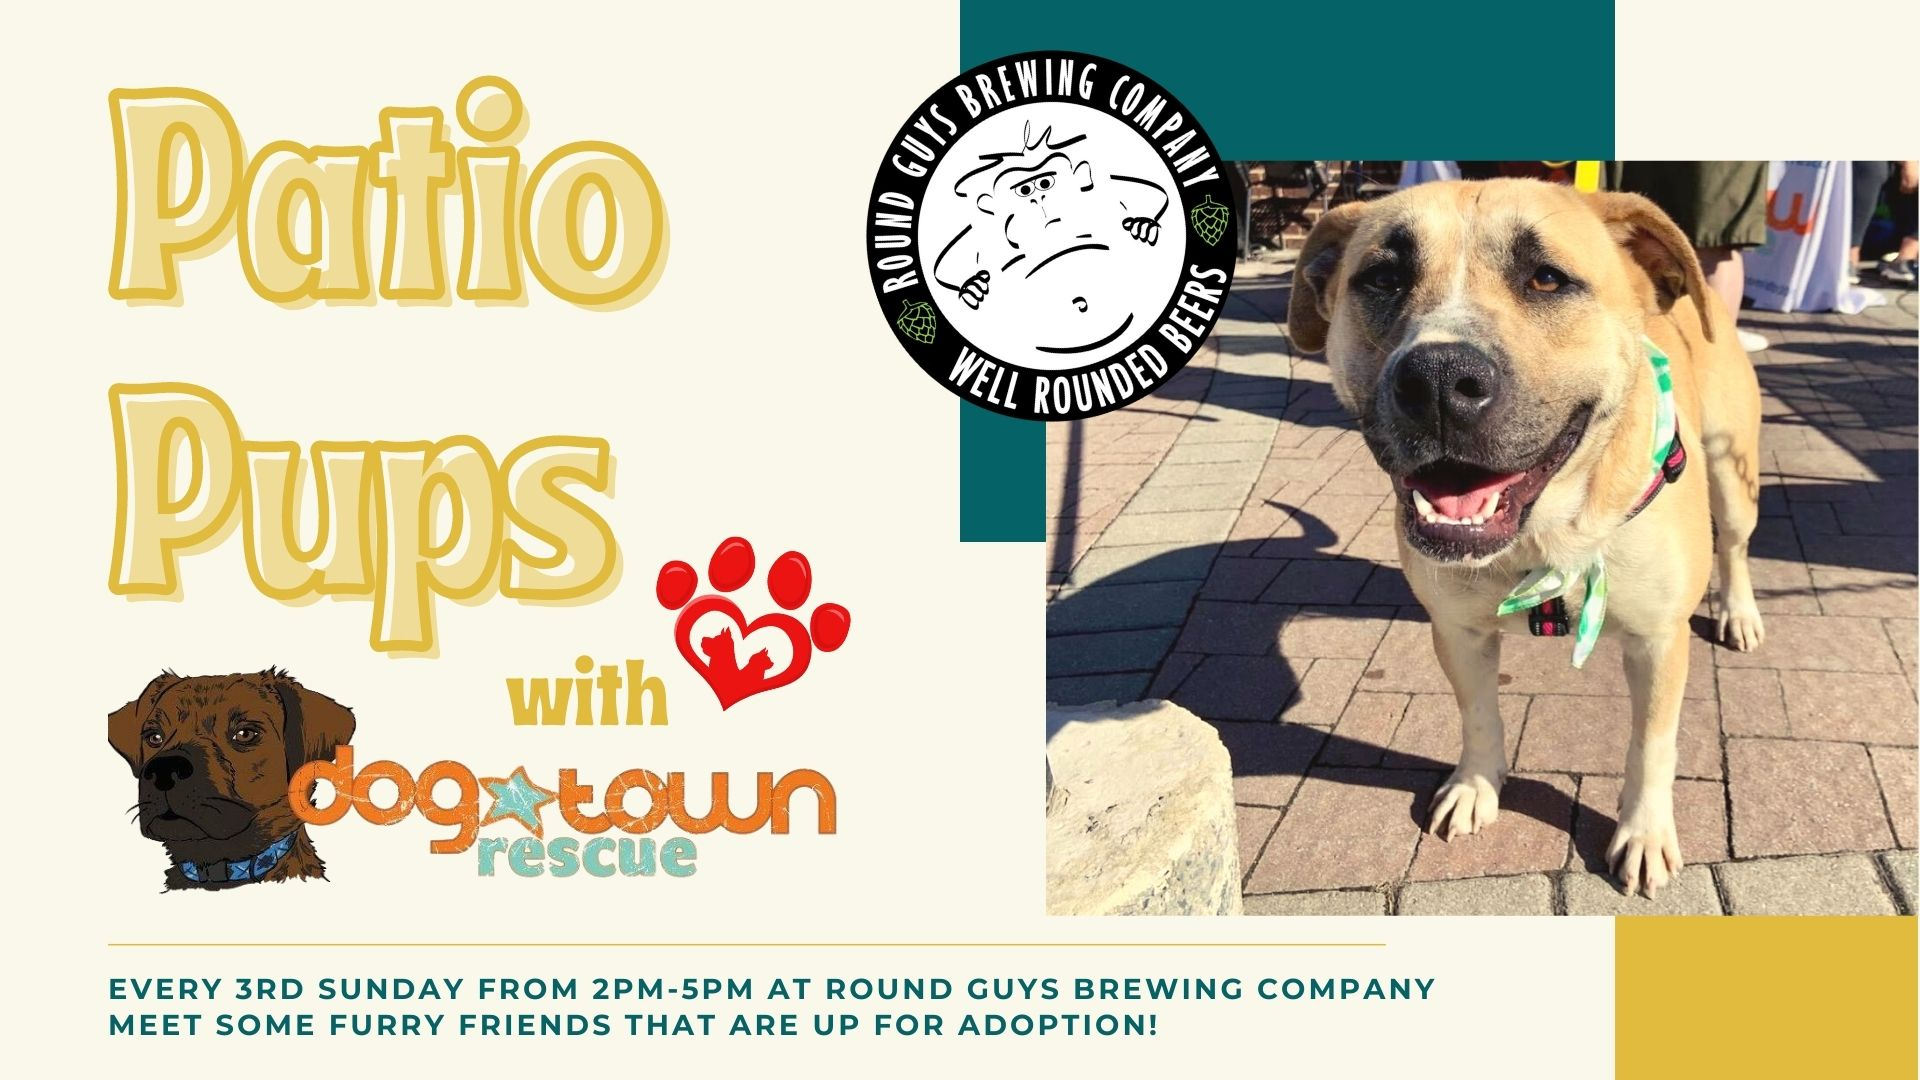 Patio Pups every 2nd Sunday at Round Guys Brewing Company in Lansdale, PA.